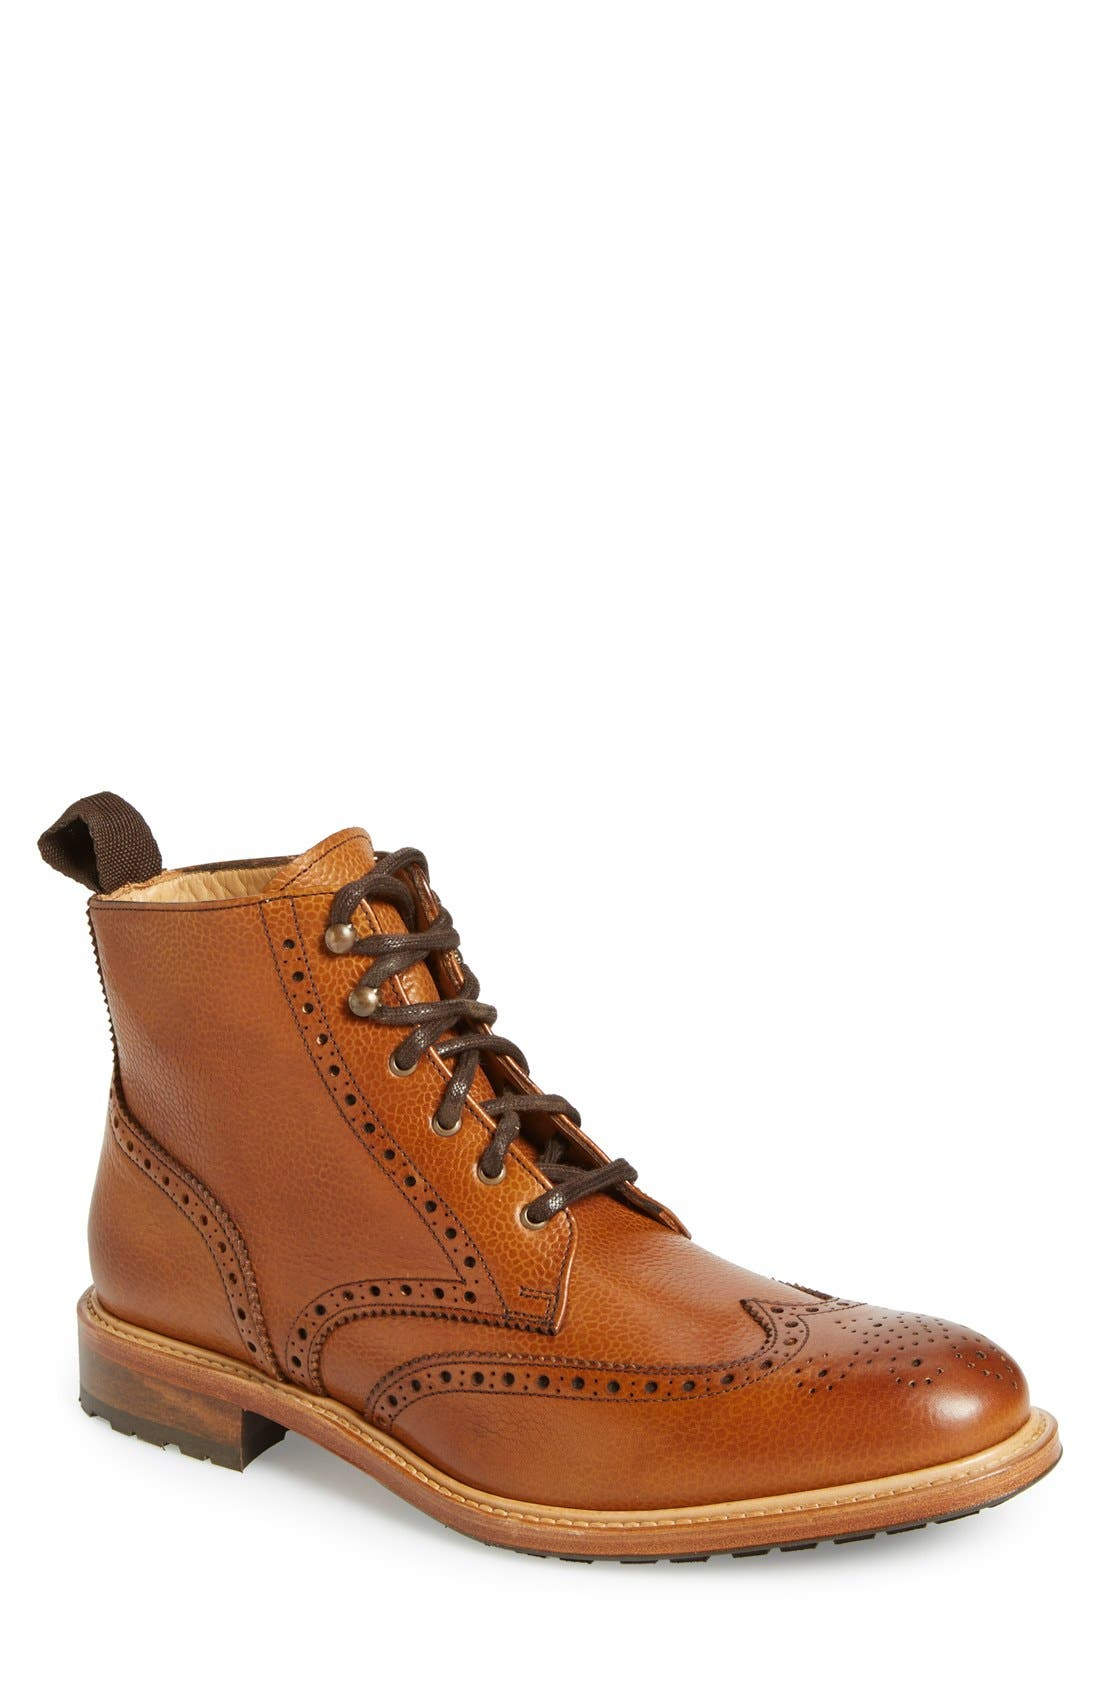 CROSBY SQUARE 'McCormick' Wingtip Boot, Main, color, 230